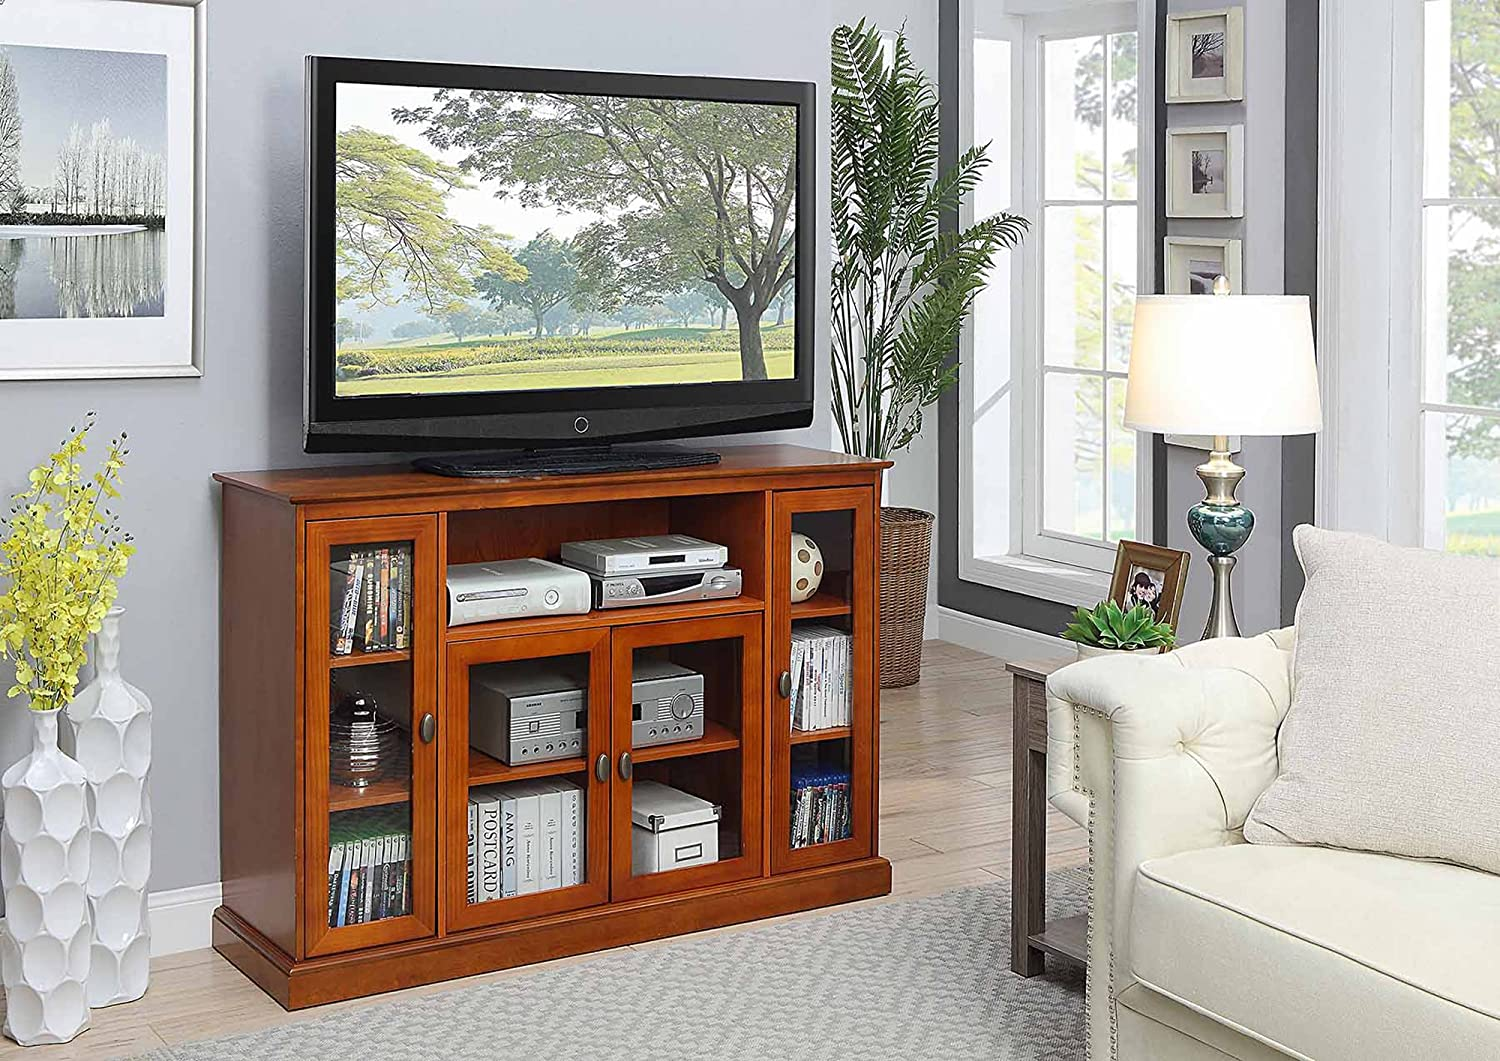 Amazon.com: Beautiful And Comfortable TV Stand With Solid ...